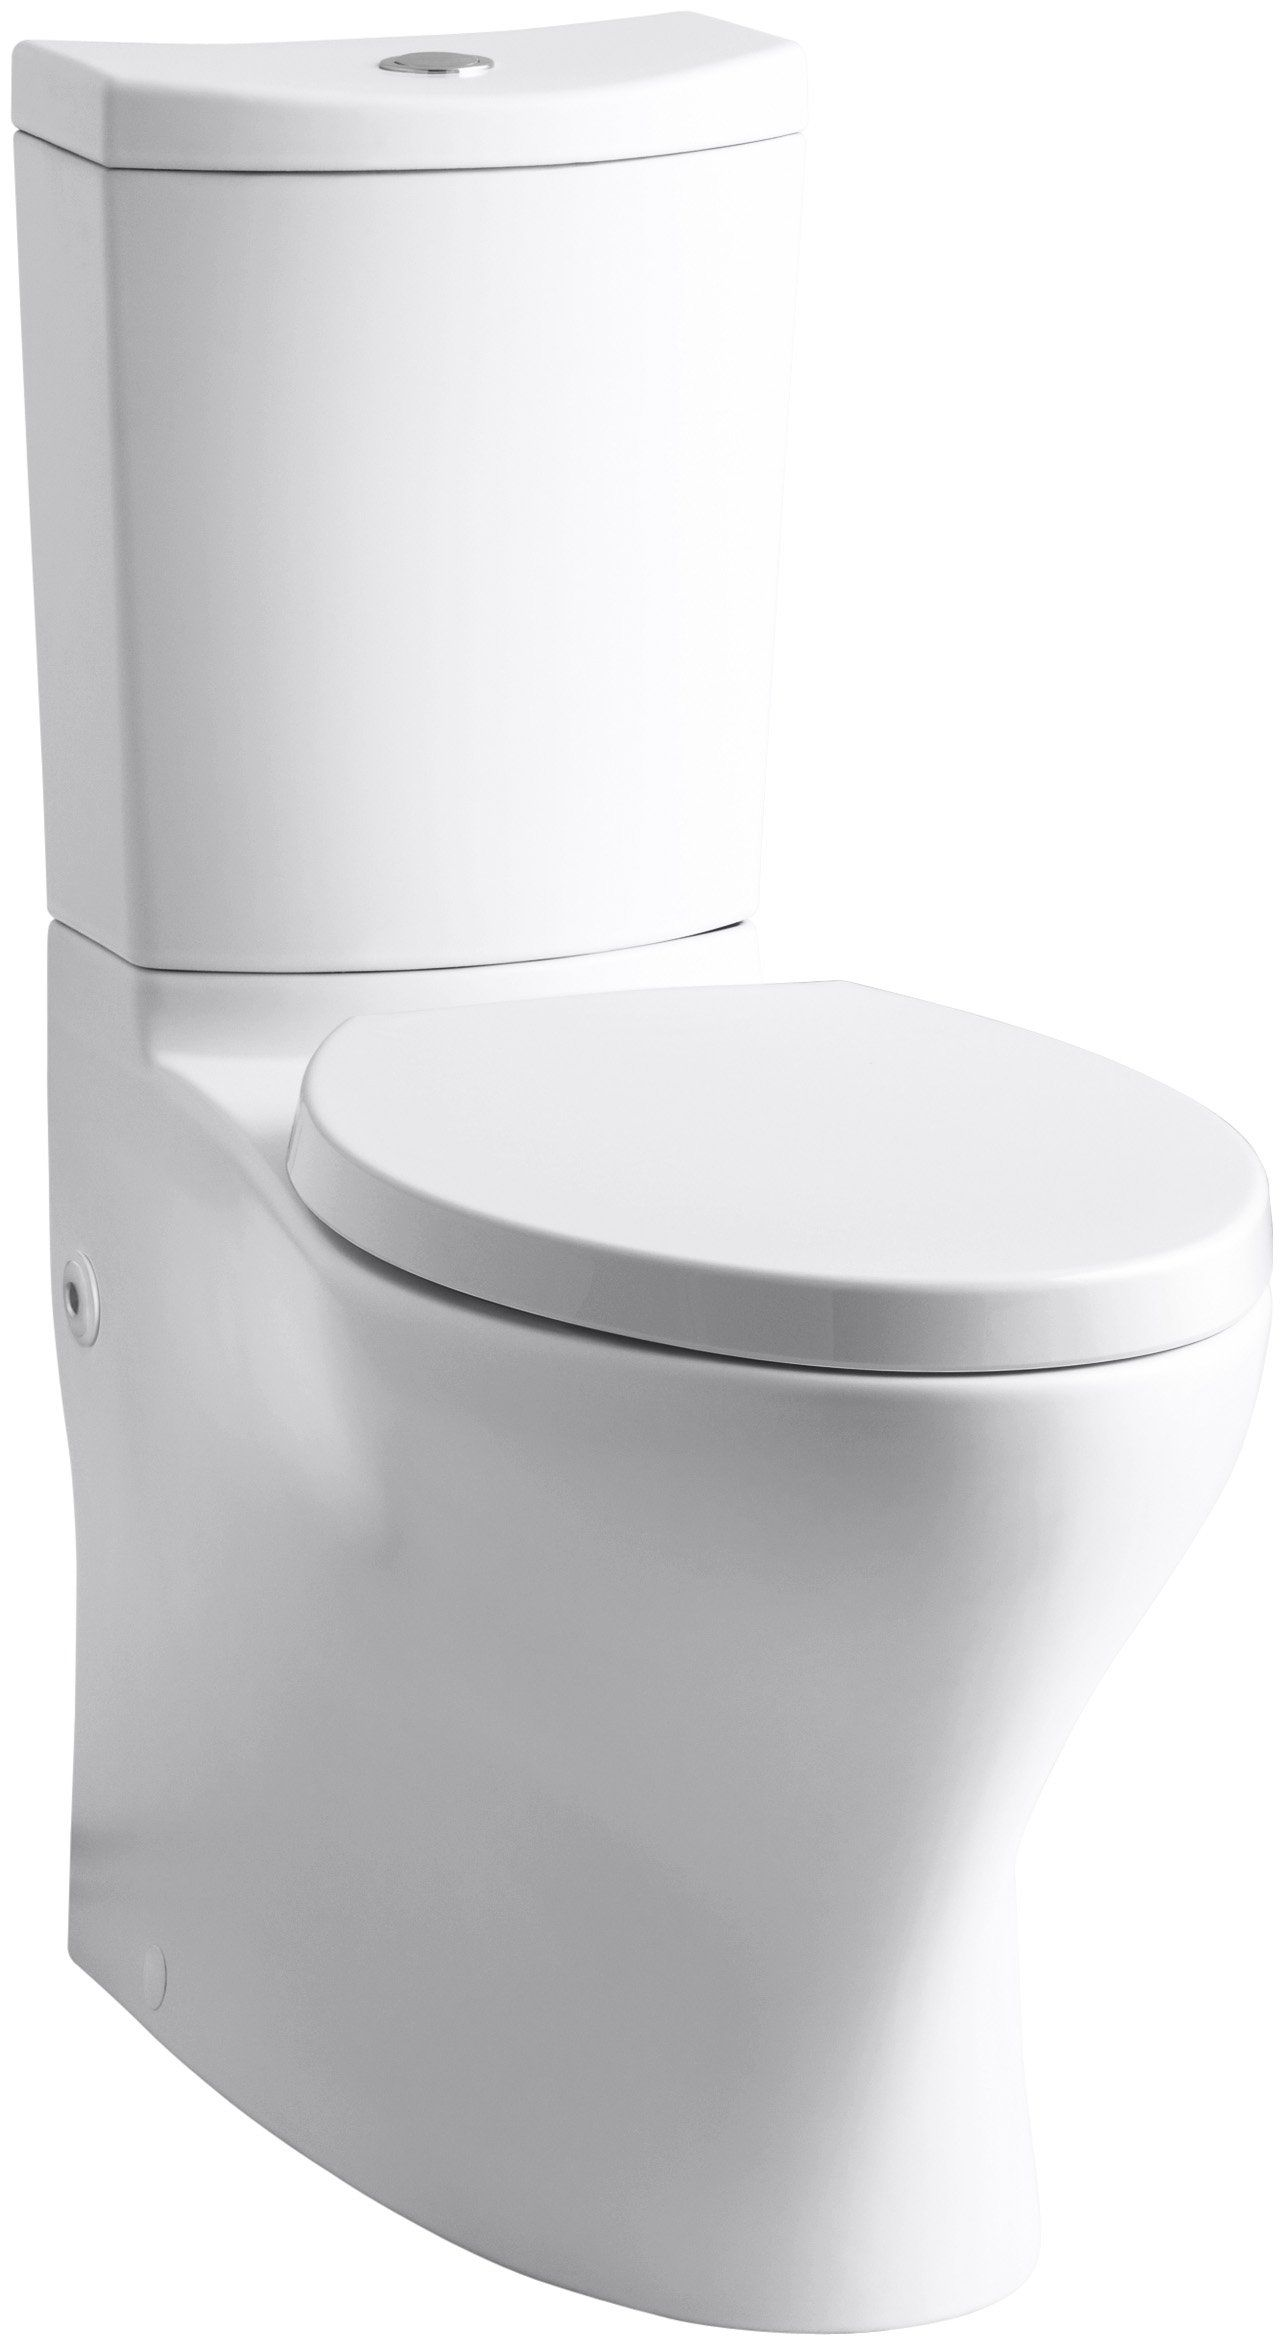 Fabulous Kohler Persuade Comfort Height Two Piece Elongated Toilet Uwap Interior Chair Design Uwaporg